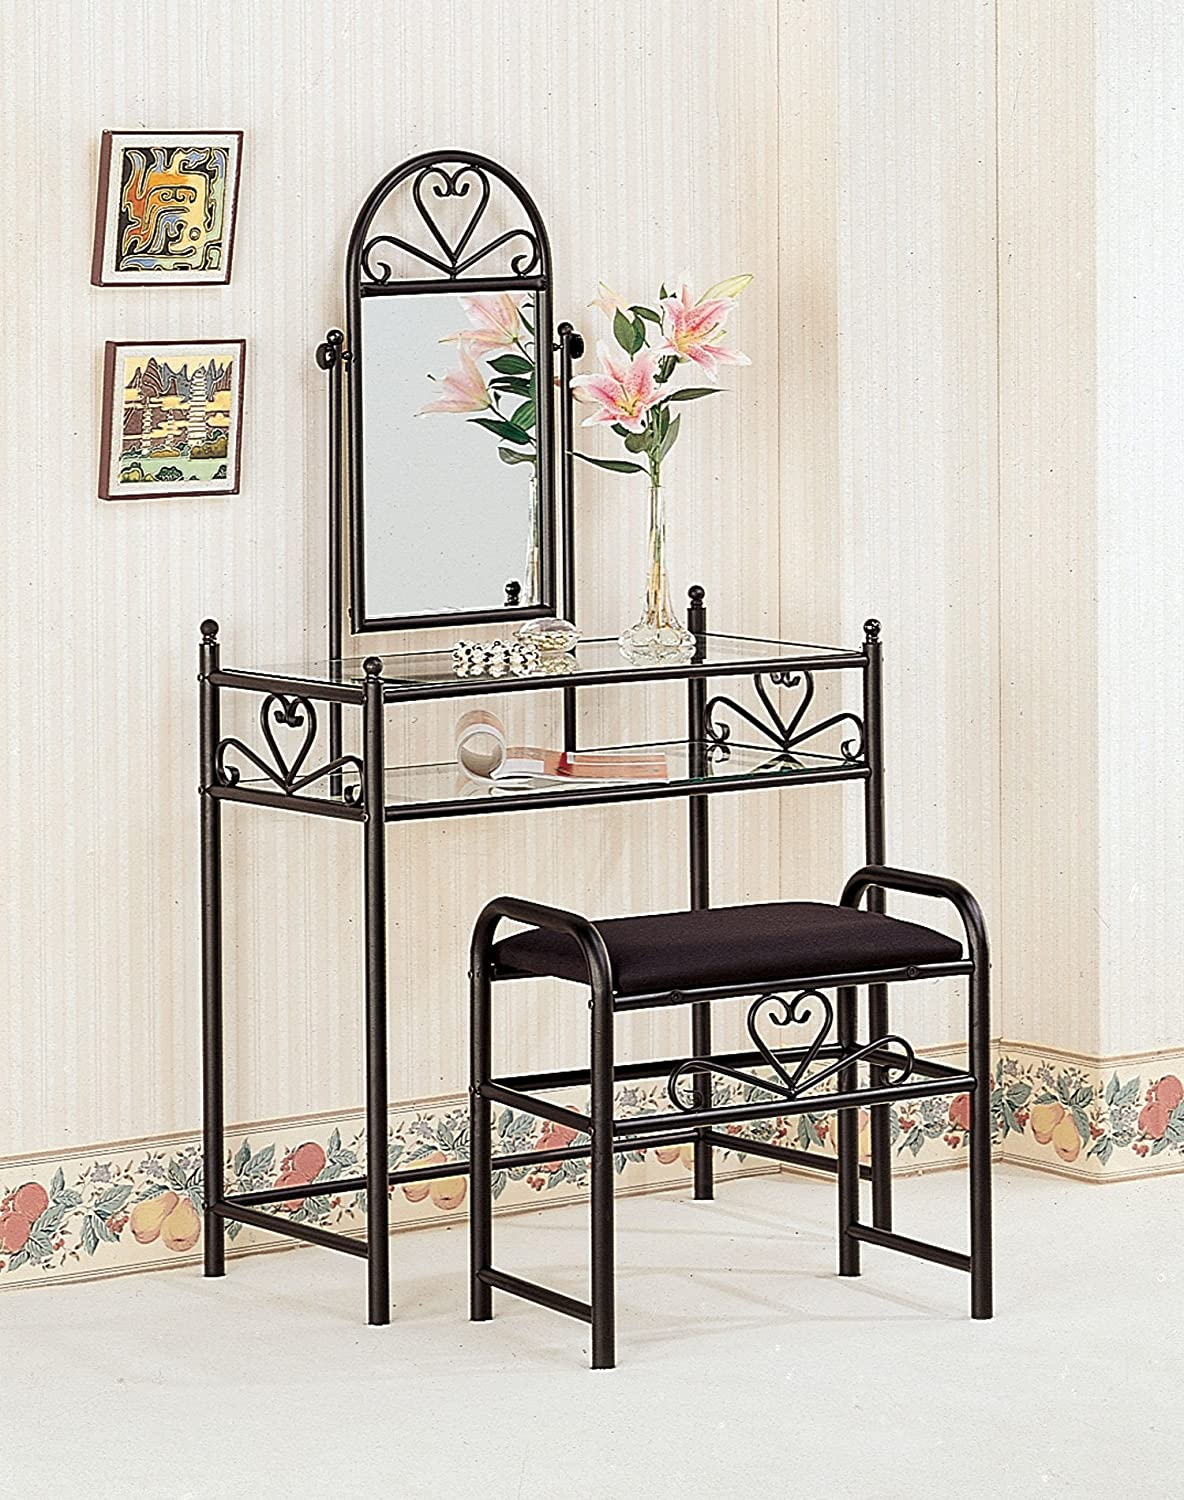 Top 6 Best Cheap Makeup Vanity Table with Mirror Reviews in 2020 4